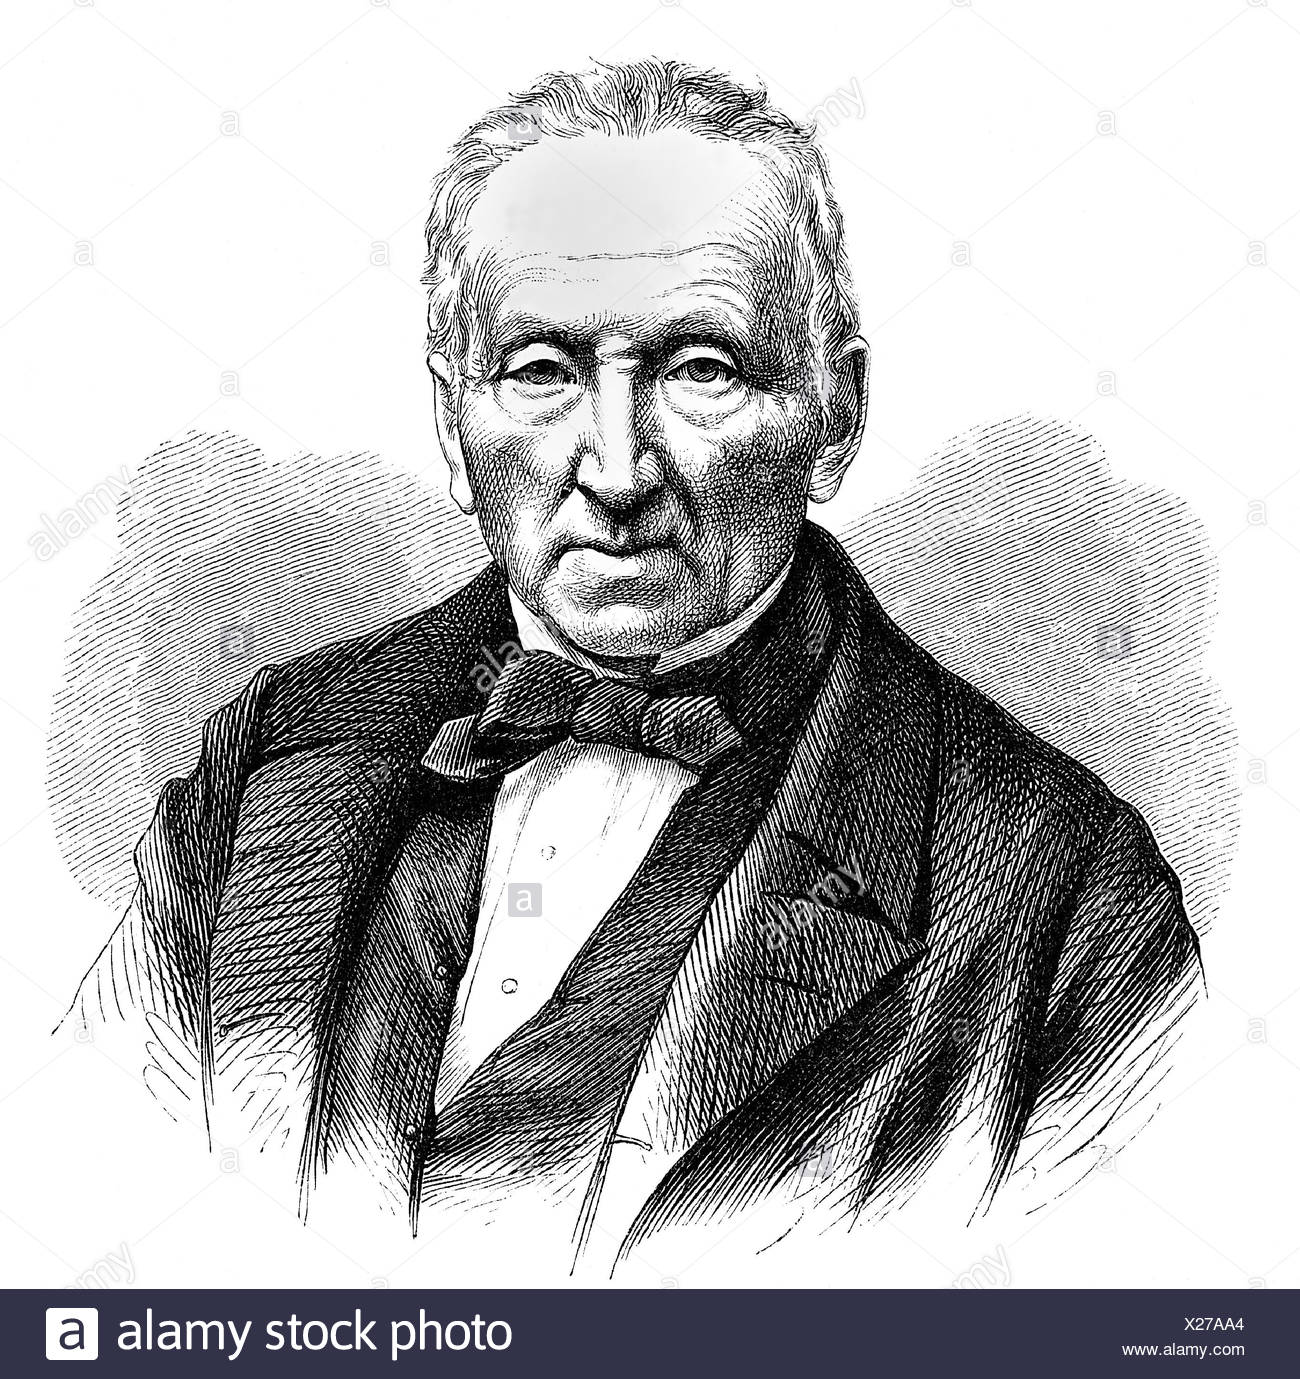 Waldmueller, Ferdinand Georg, 15.1.1793 - 23.8.1865, German painter, professor at the Vienna Academy, portrait, etching, , Additional-Rights-Clearances-NA - Stock Image